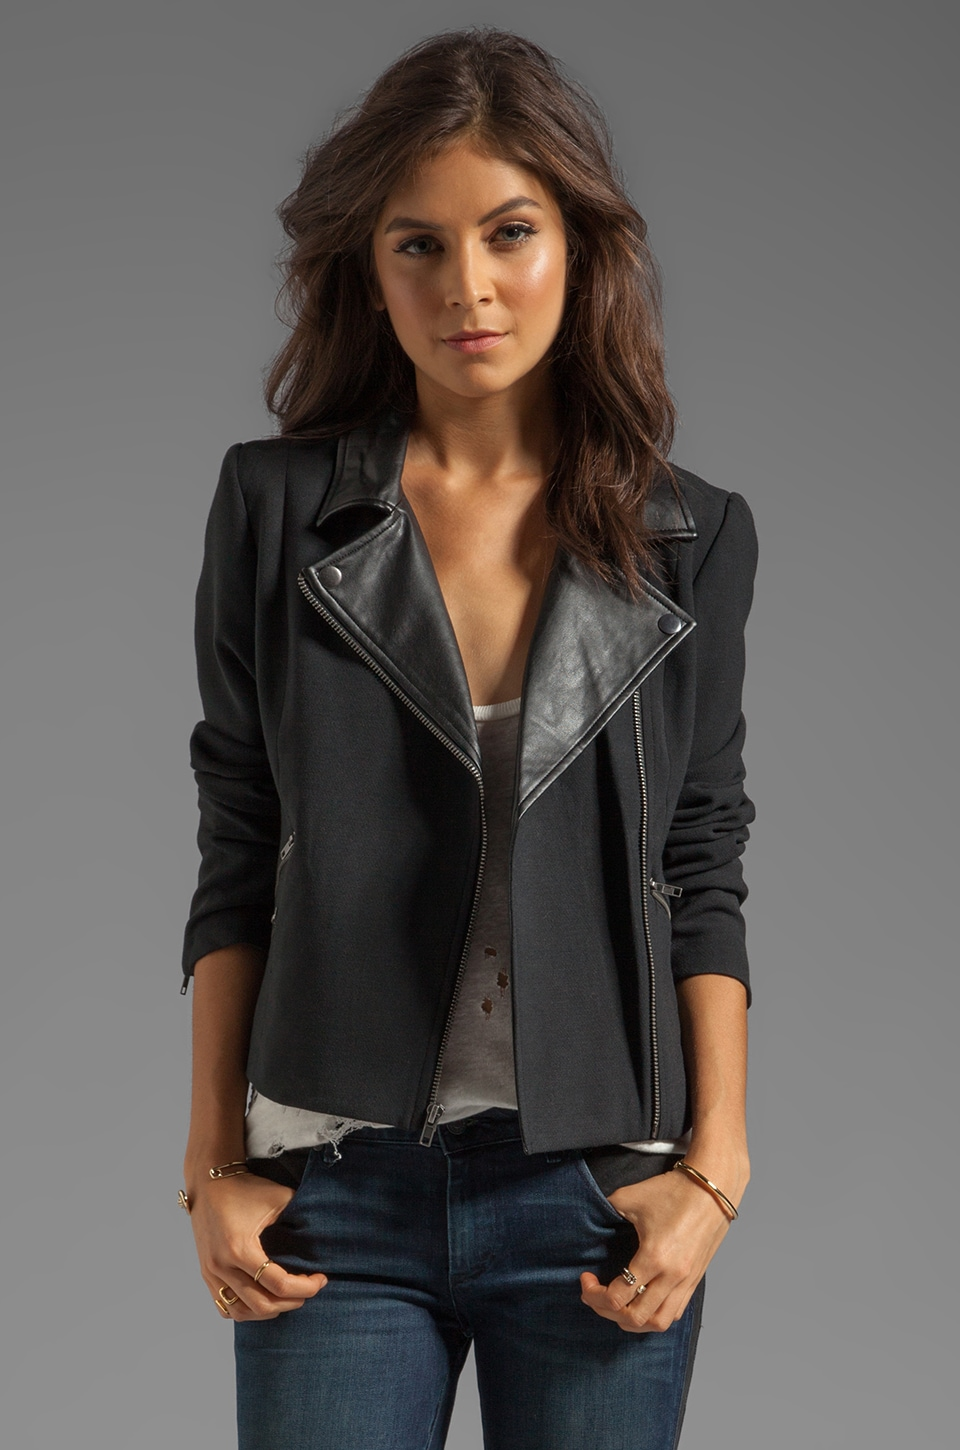 BB Dakota Juliette PU Lapel & Double Cloth Moto Jacket in Black